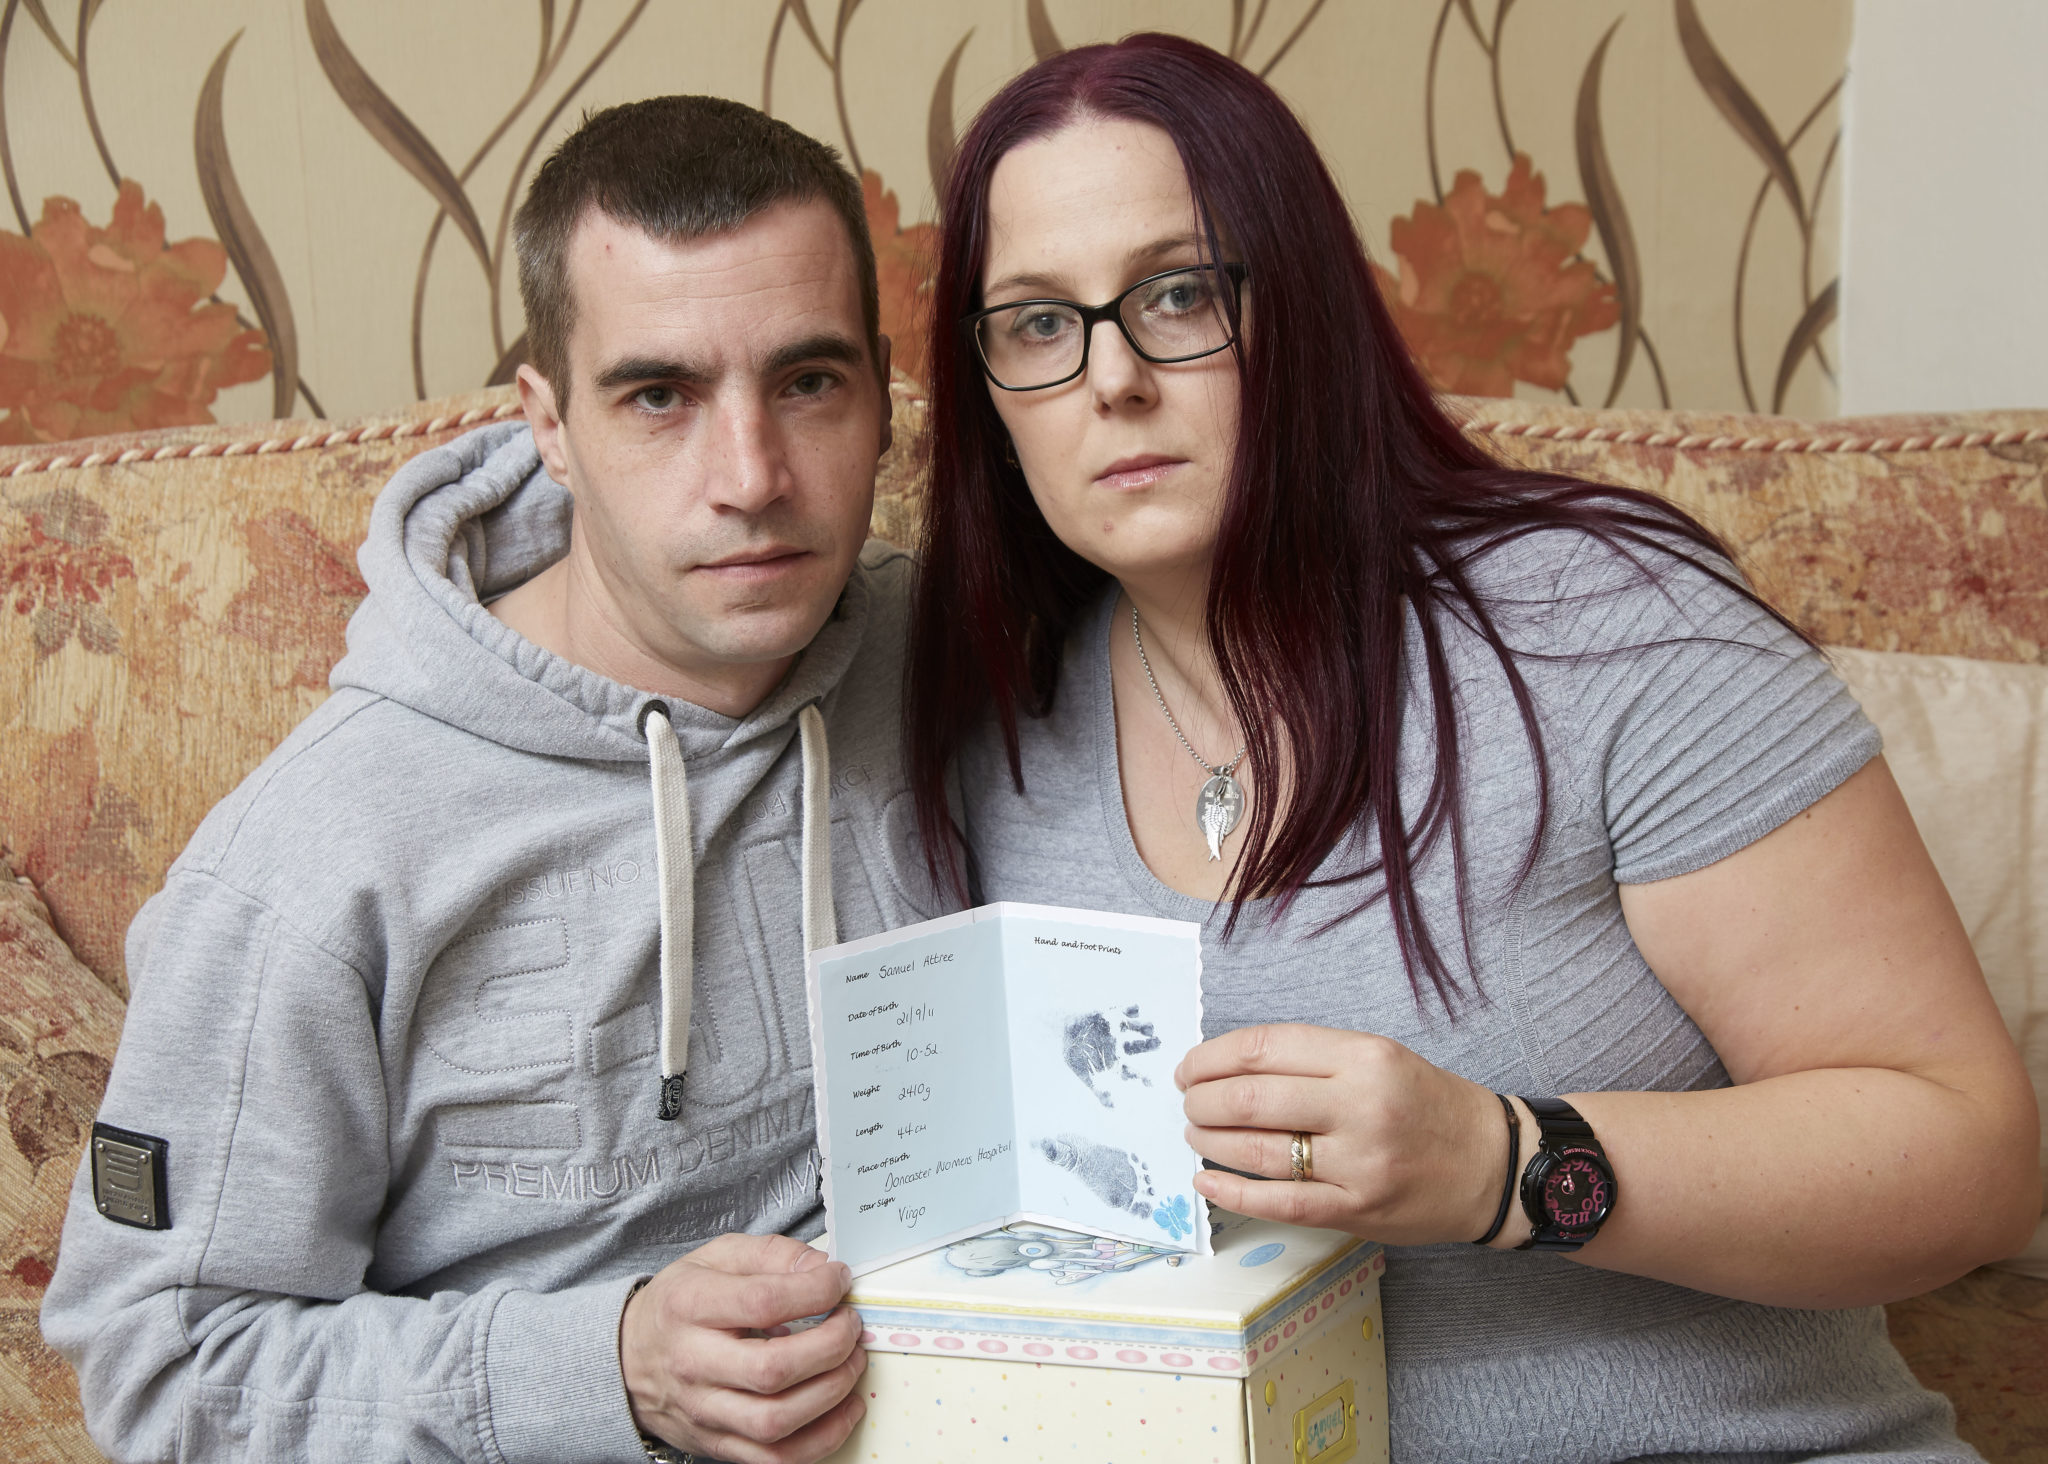 Hospital pays compensation in medical negligence case relating to stillbirth of baby boy, but family still await a direct apology